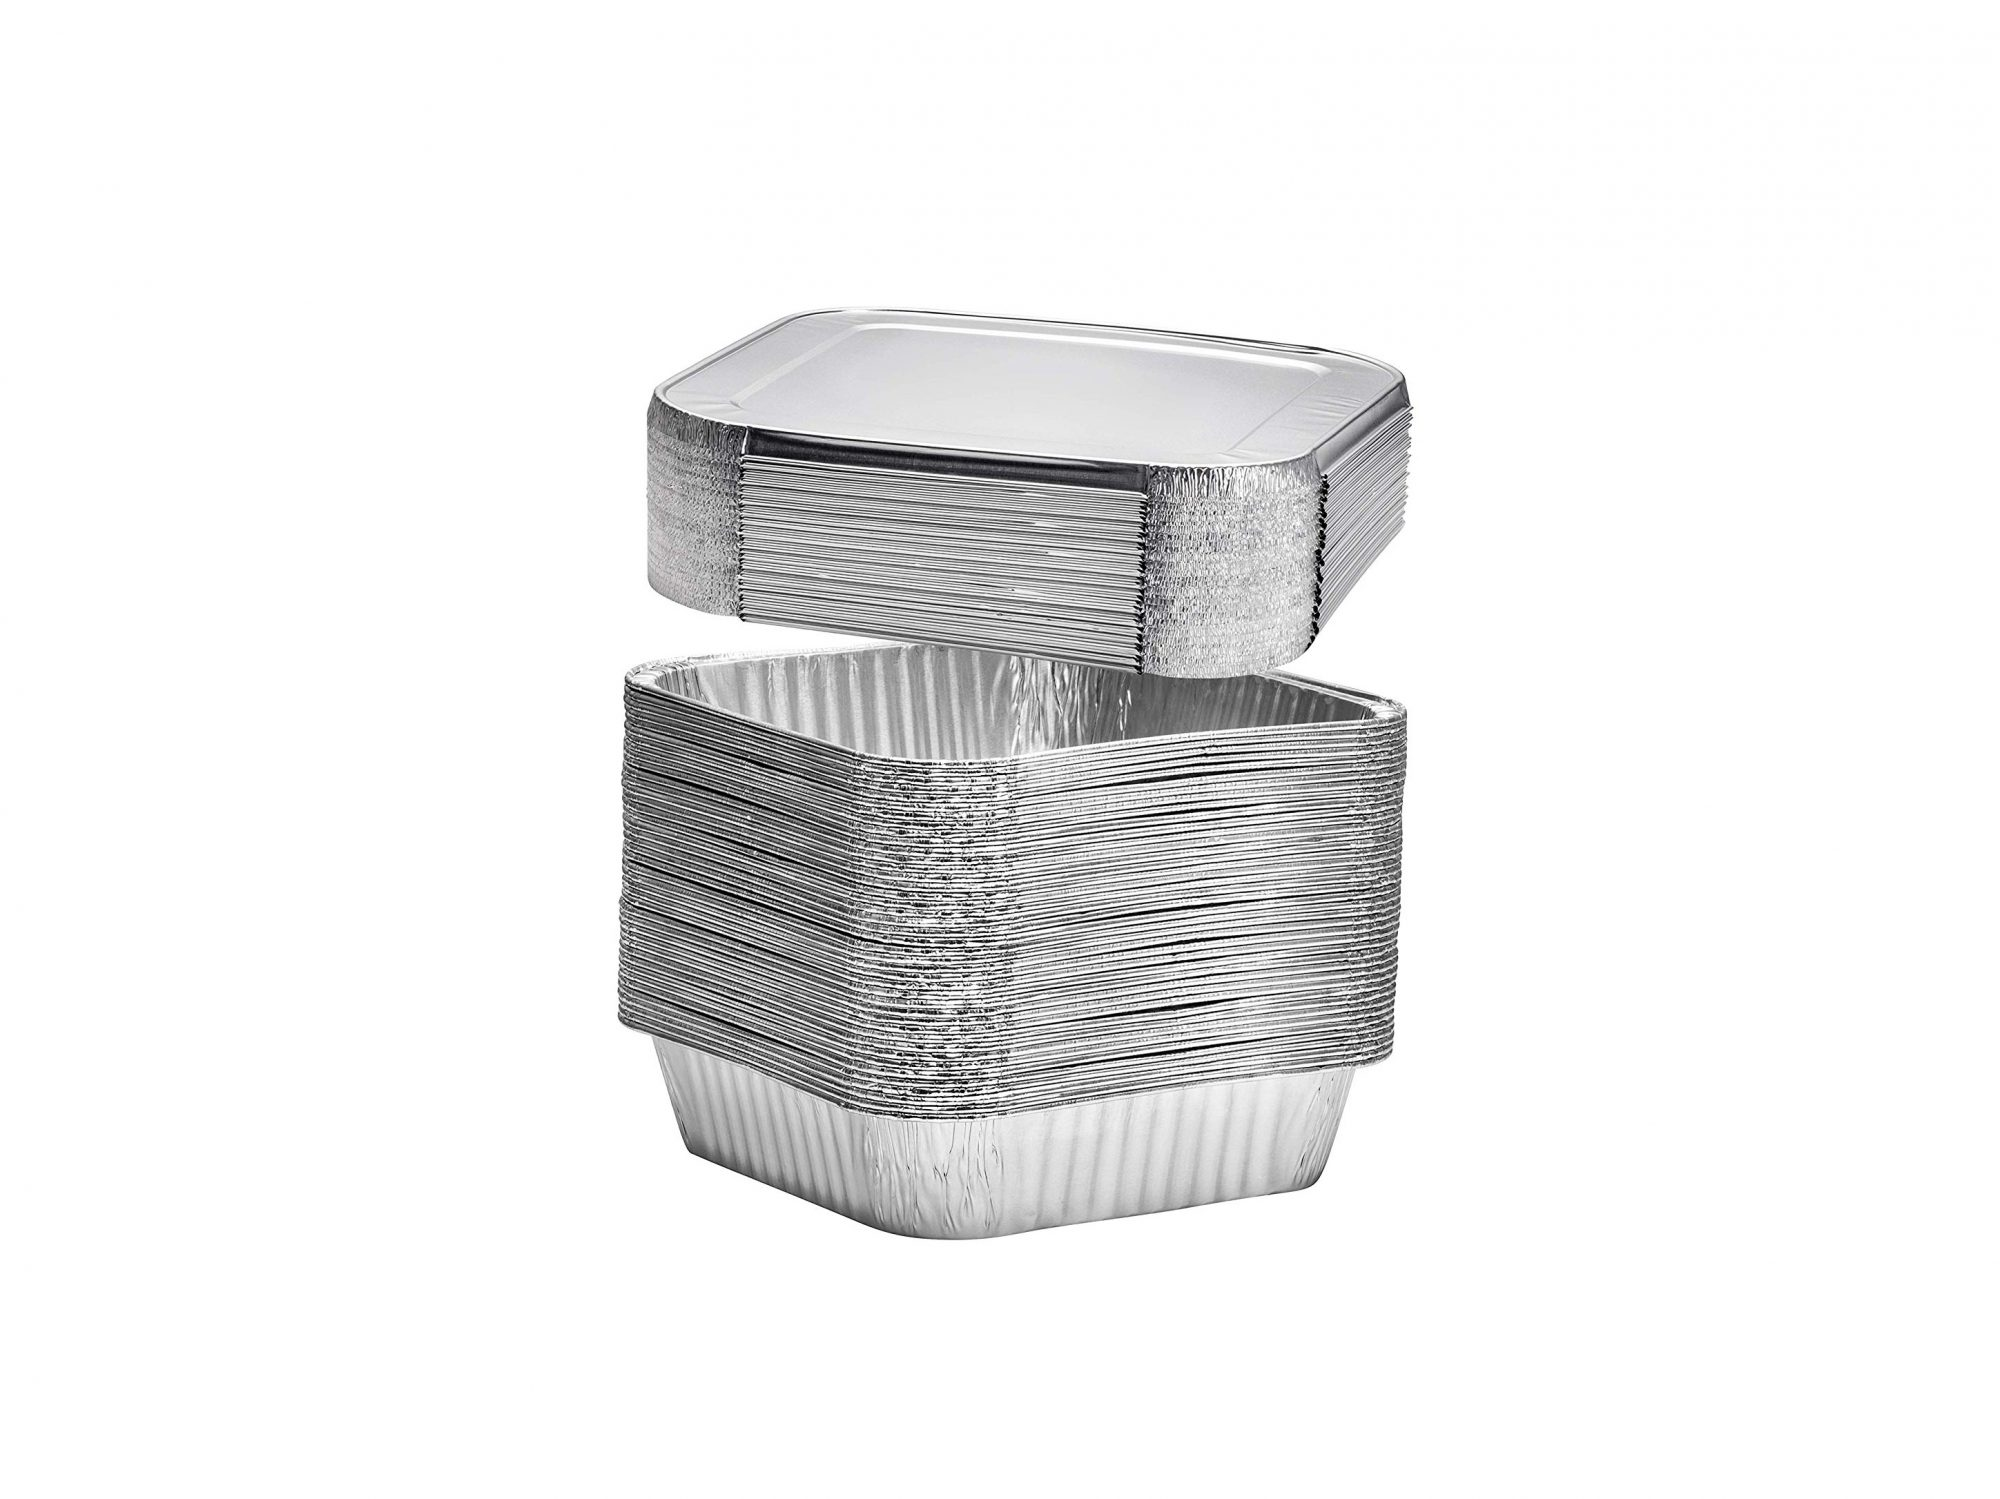 Square Disposable Aluminum Cake Pans with Lids